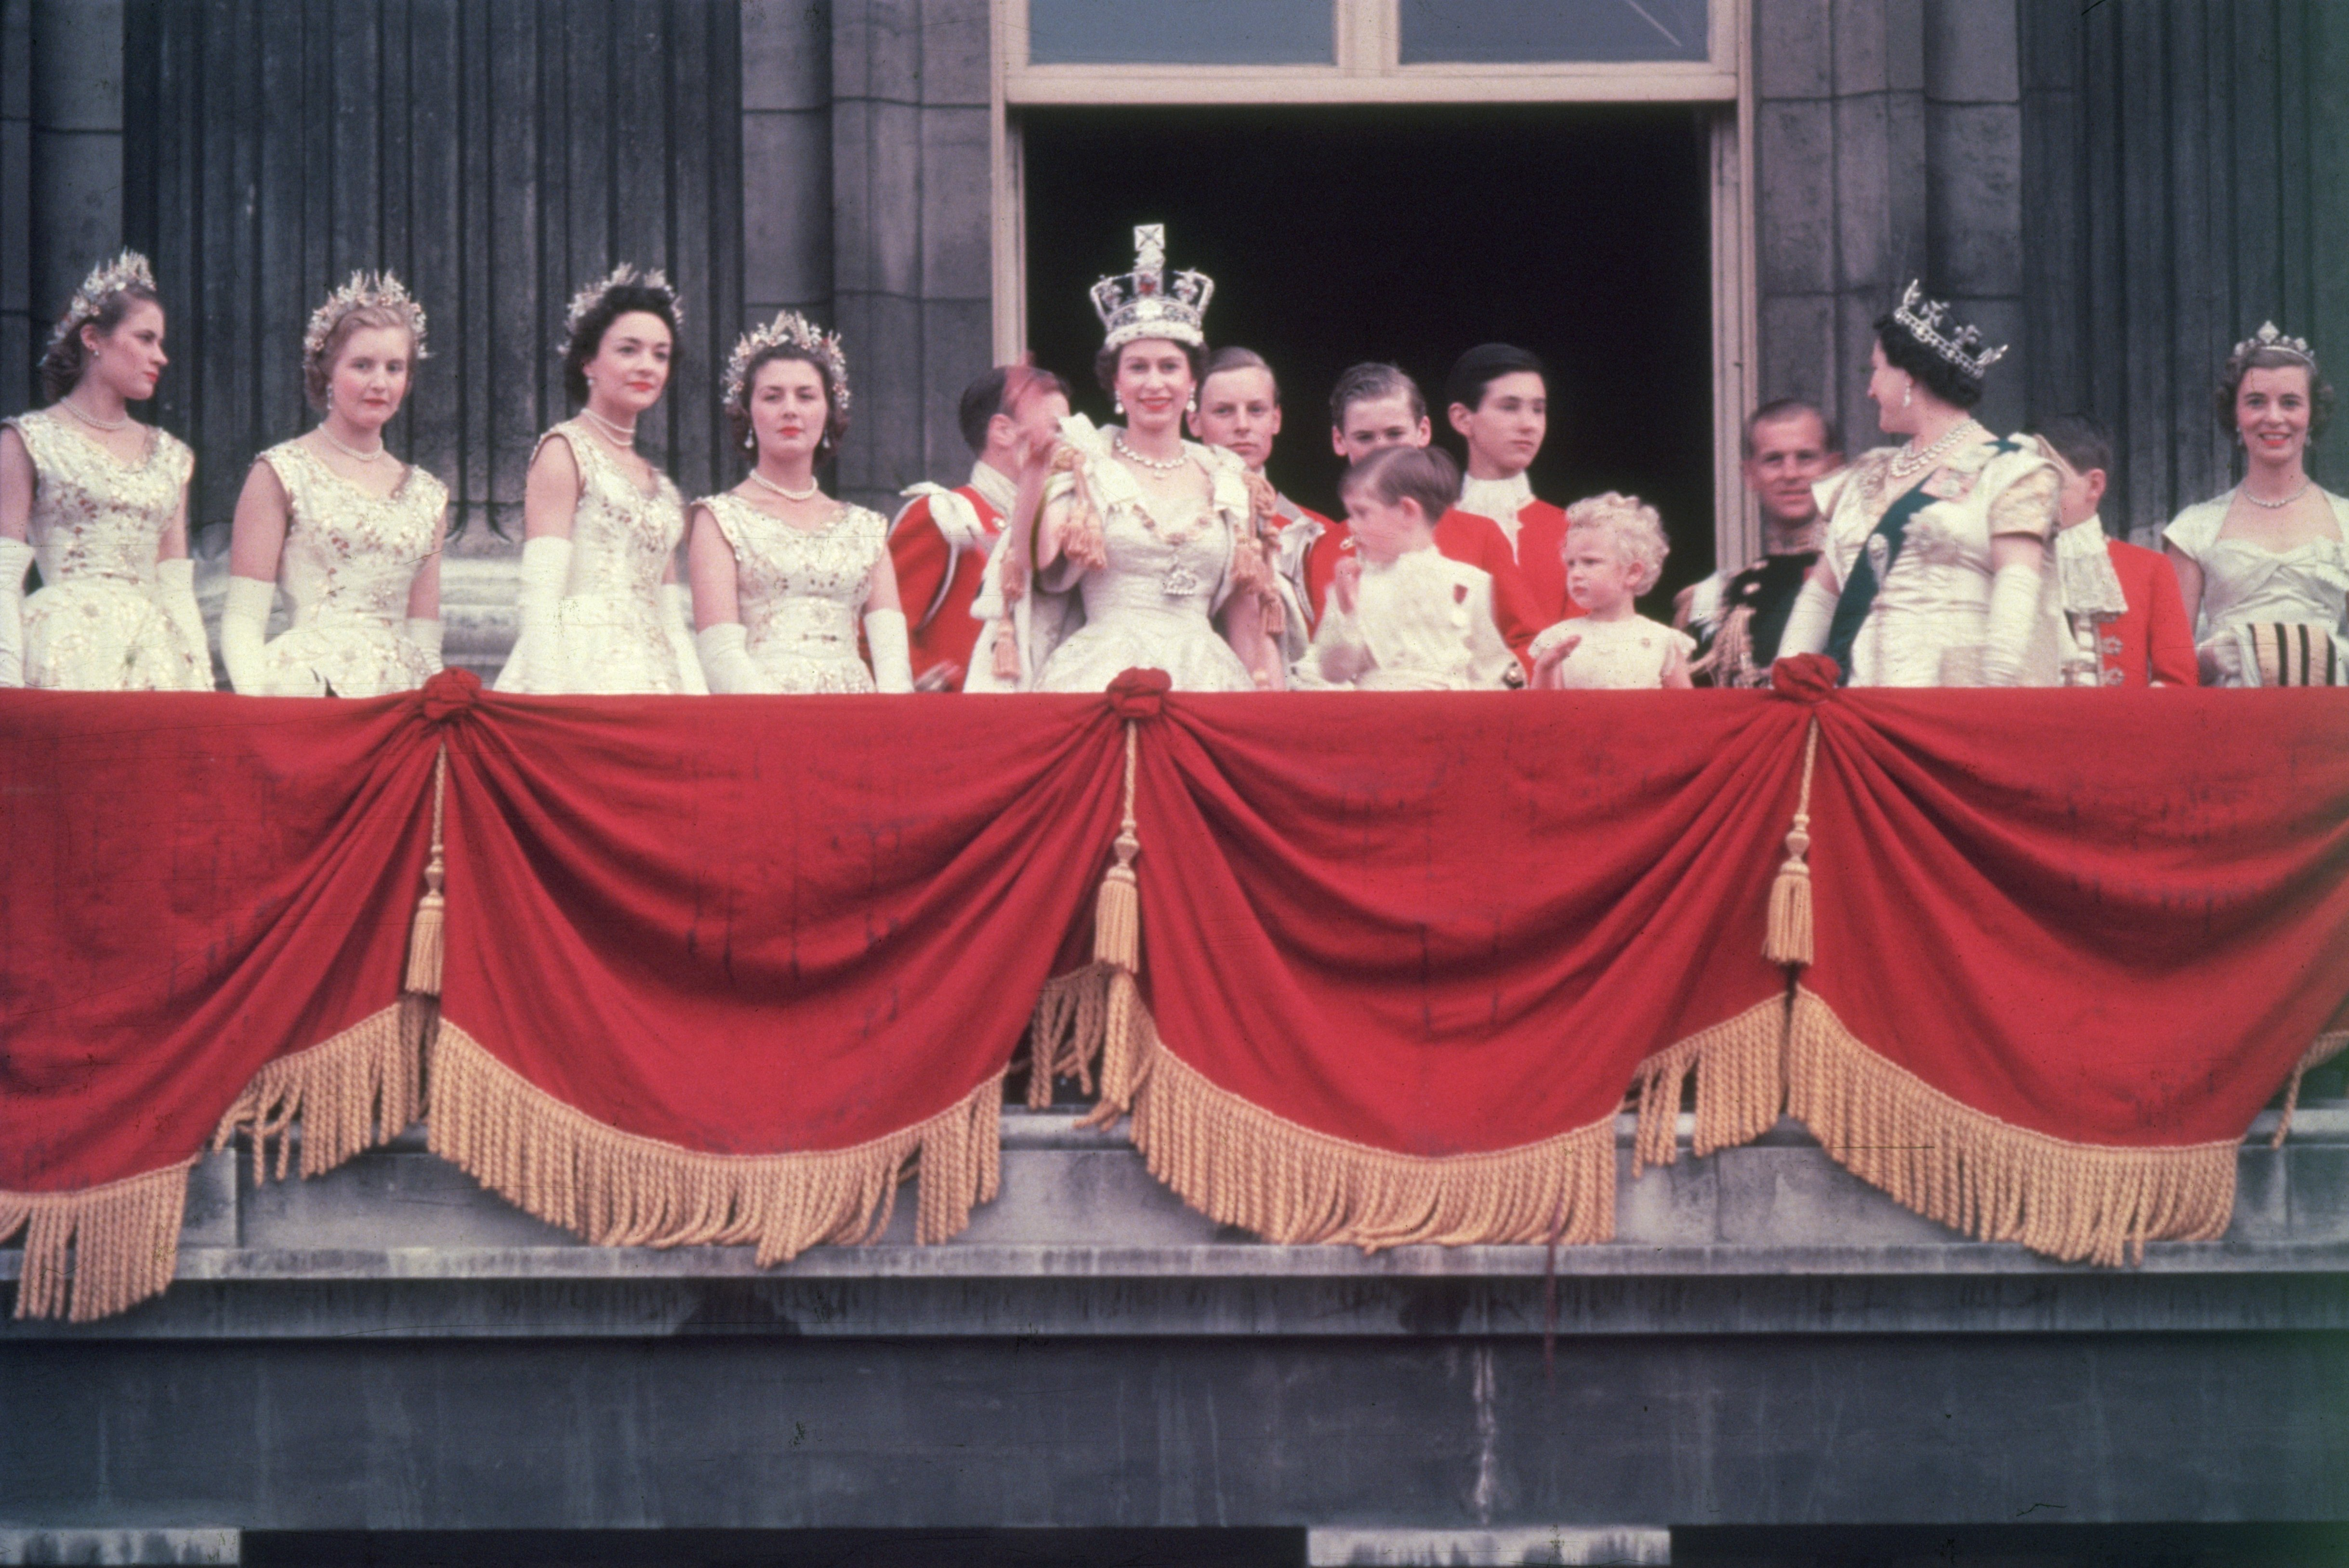 The newly crowned Queen Elizabeth II waves to the crowd from the balcony at Buckingham Palace. Her children Prince Charles and Princess Anne stand with her in 1953 | Photo: Getty Images